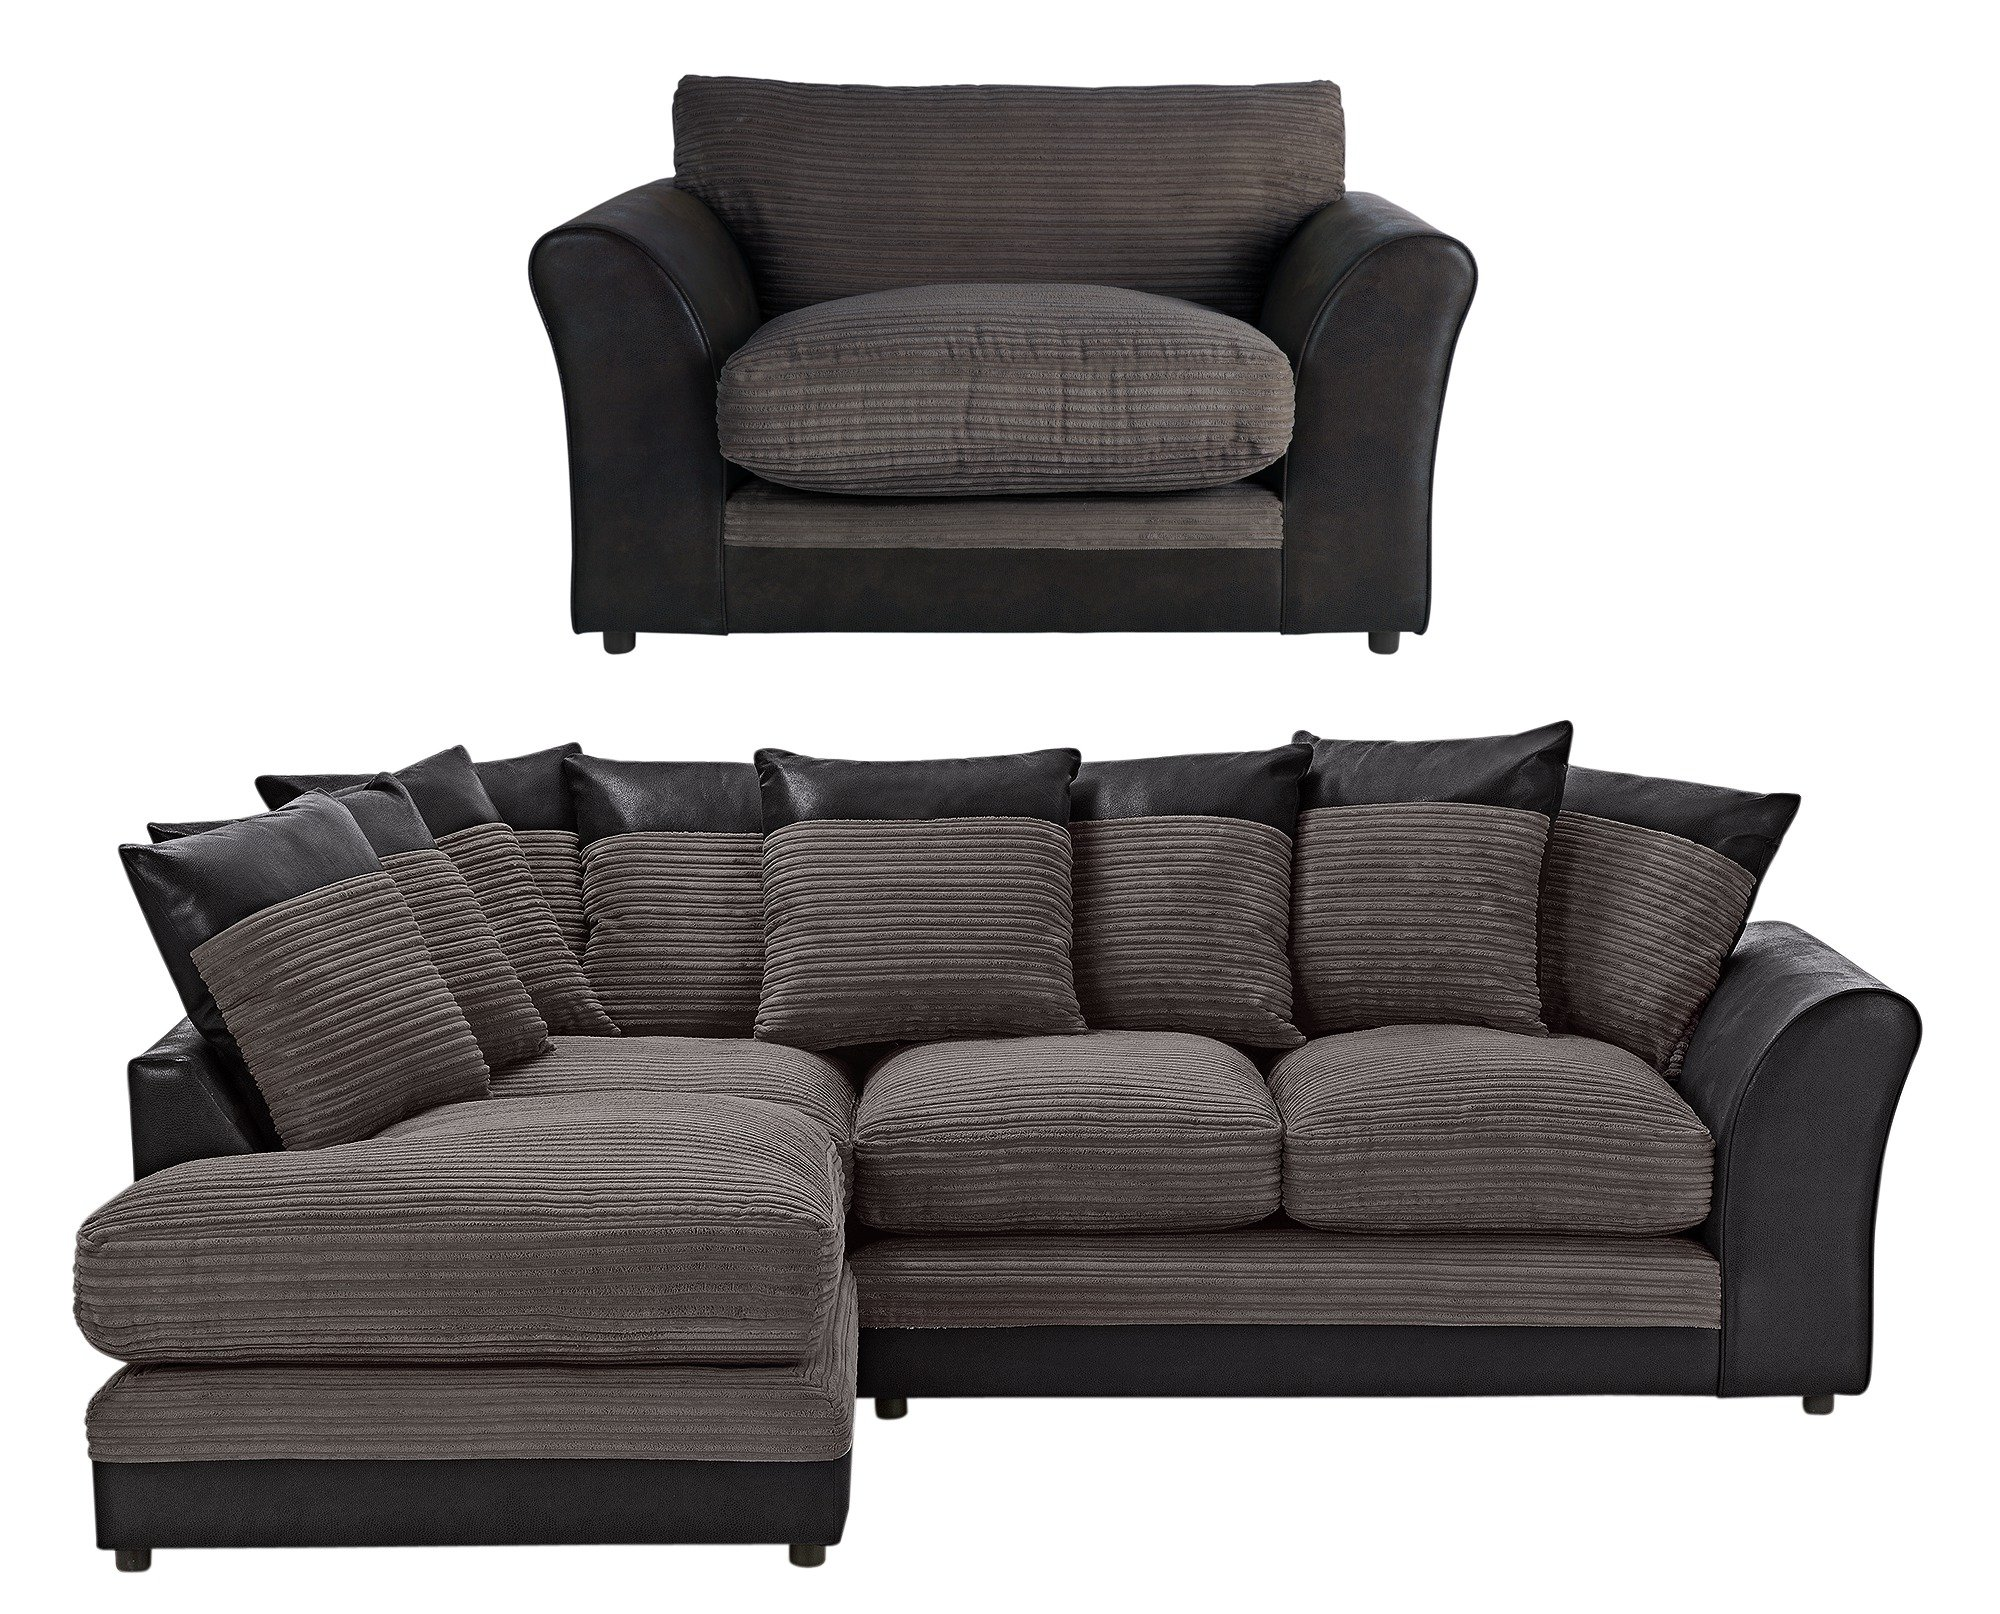 HOME Harley Large Left Corner Sofa and Chair - Charcoal